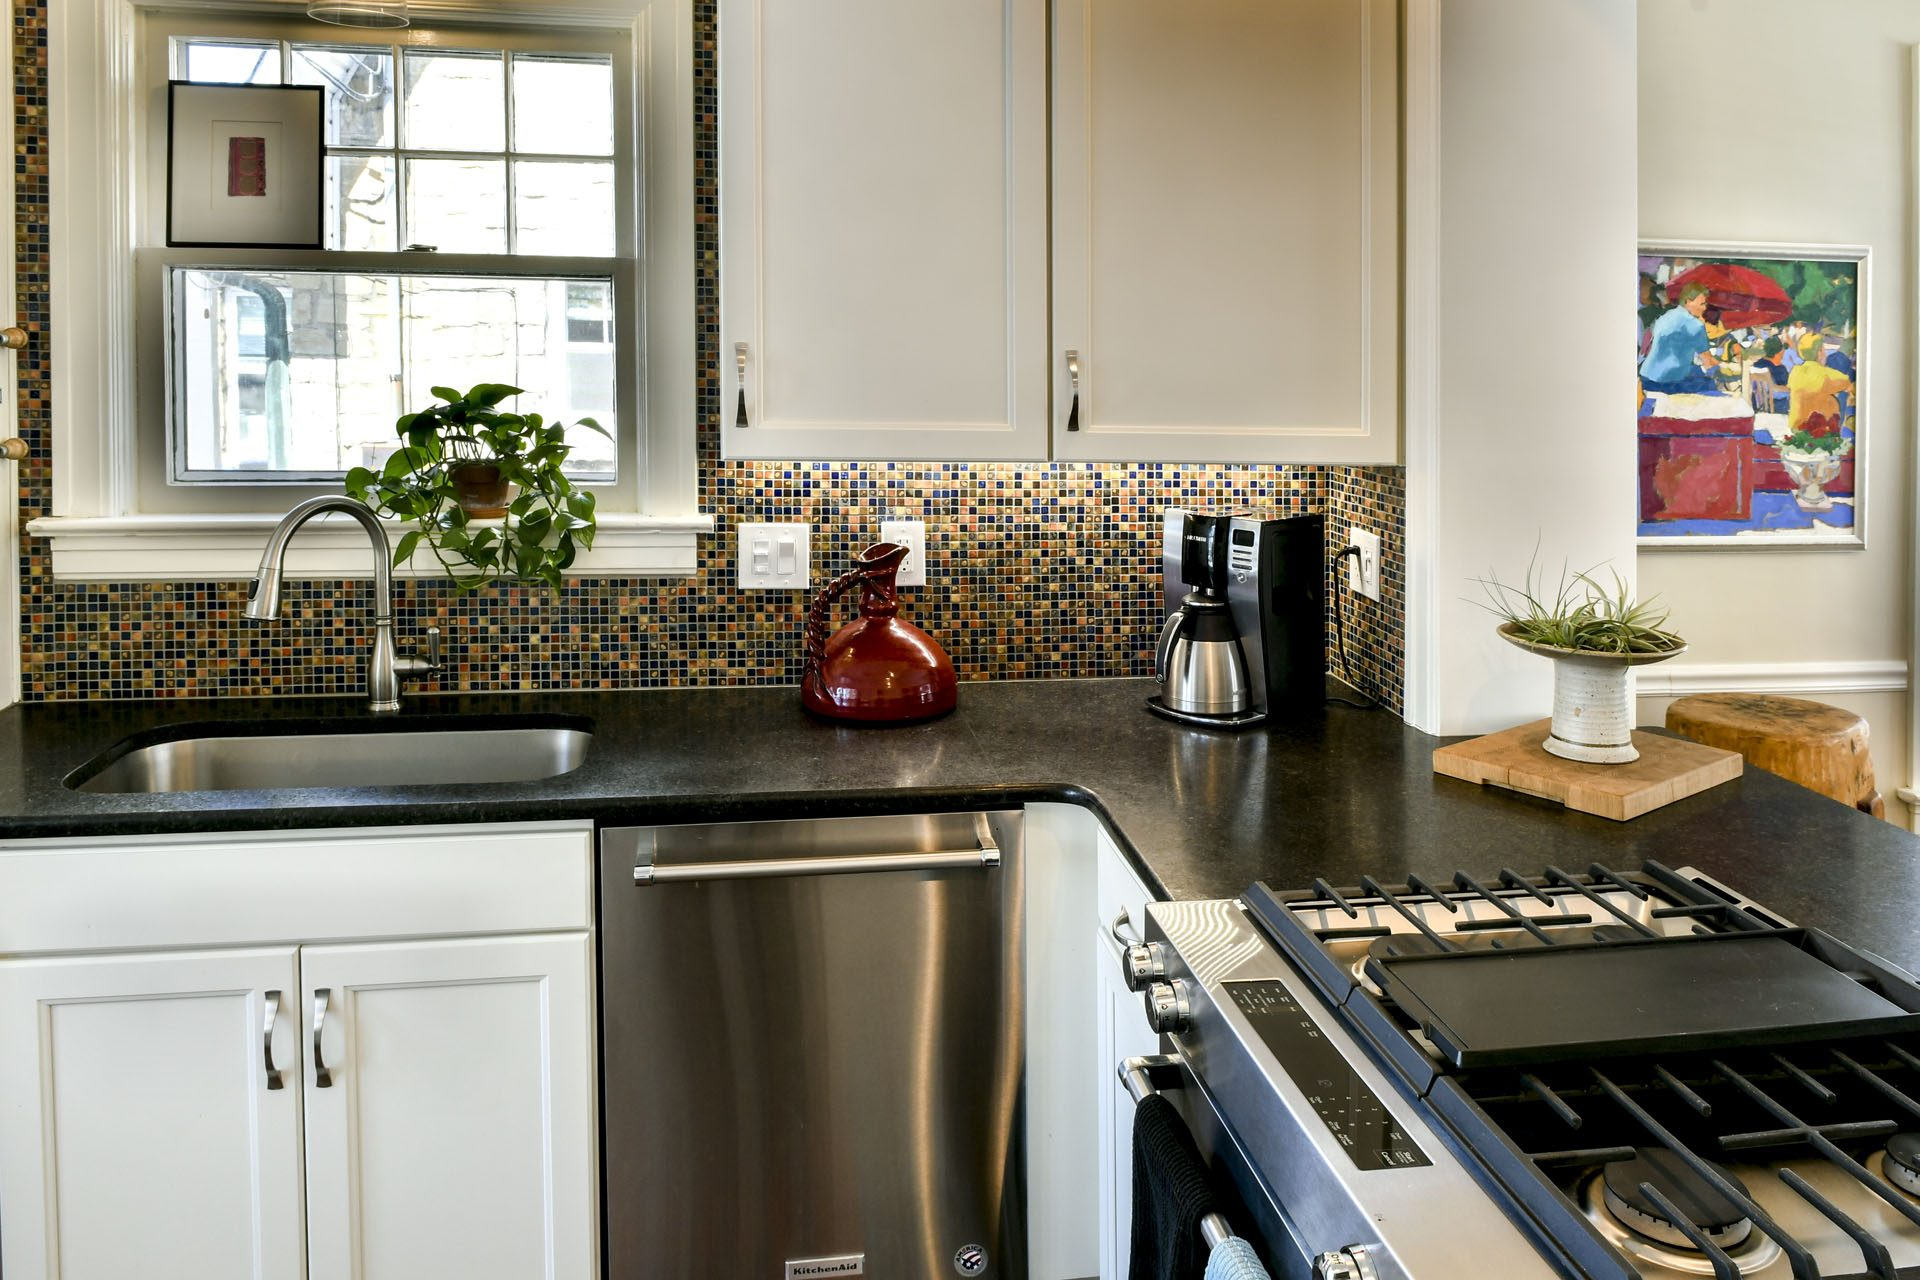 Louisville Interior Designer, Louisville Renovation Designer, Kitchen Renovation, Multi-Colored Backsplash, Stainless Appliances, Colorful Art, Hardwood Flooring, White Kitchen Cabinets, Granite Countertops, Stainless Fixtures, Beautiful Kitchen Renovation